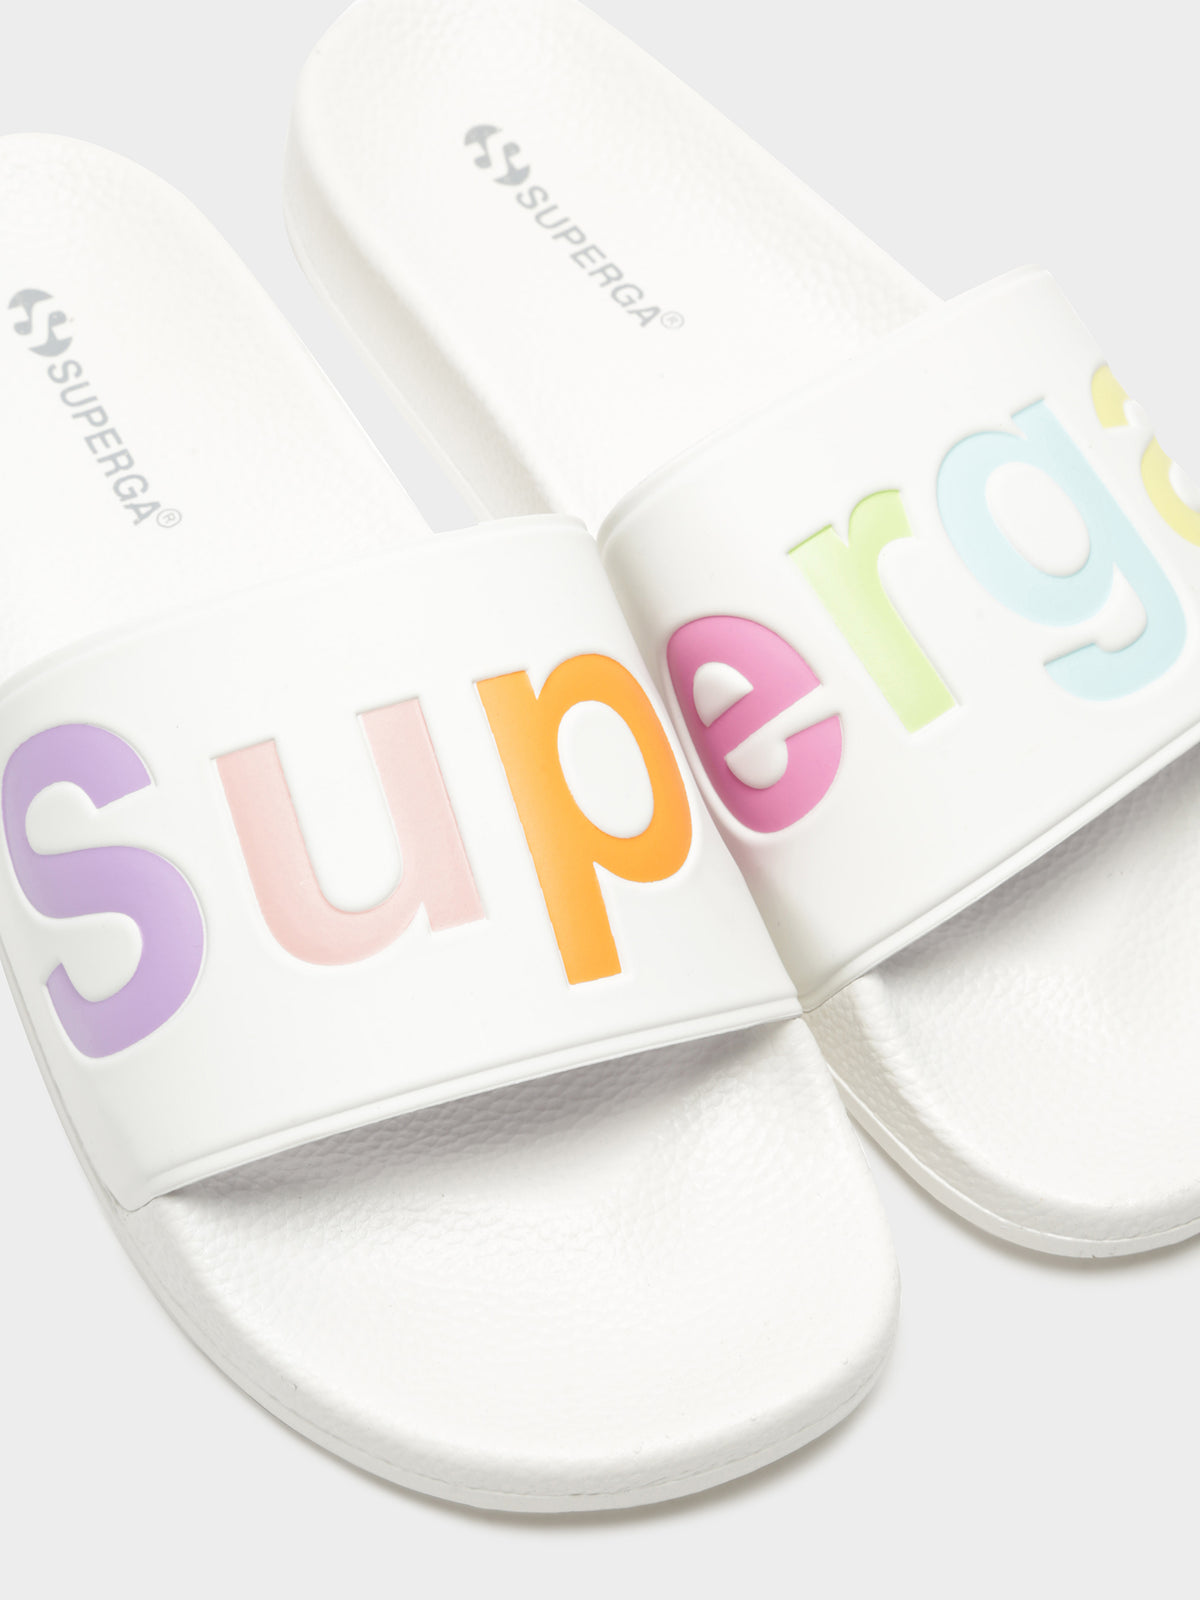 Womens 1908 PUU Slides in White